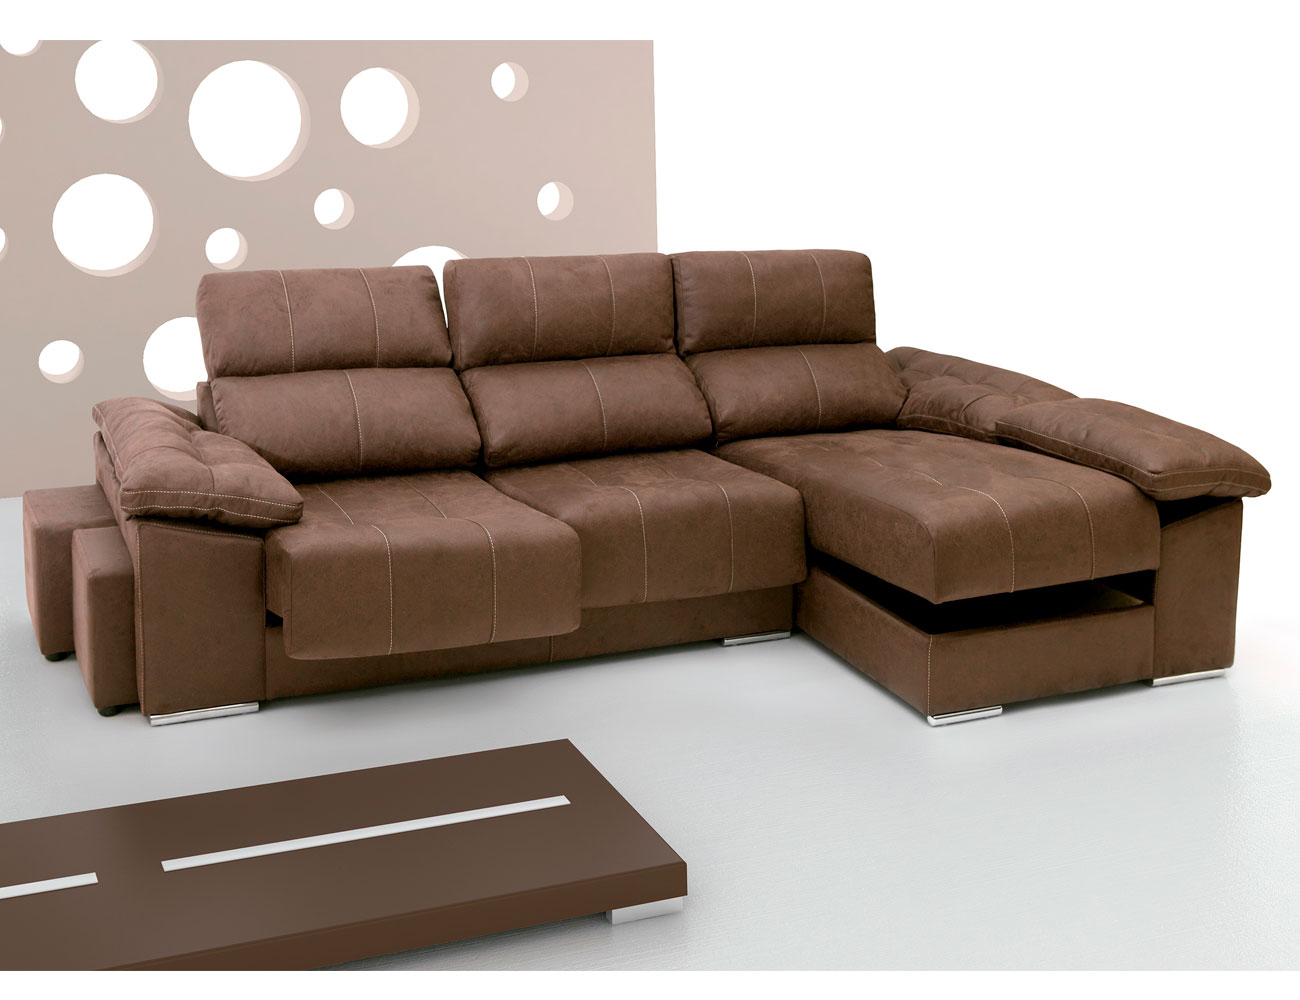 Sof con asientos extra bles y respaldos reclinables 215 for Medidas sofa chaise longue